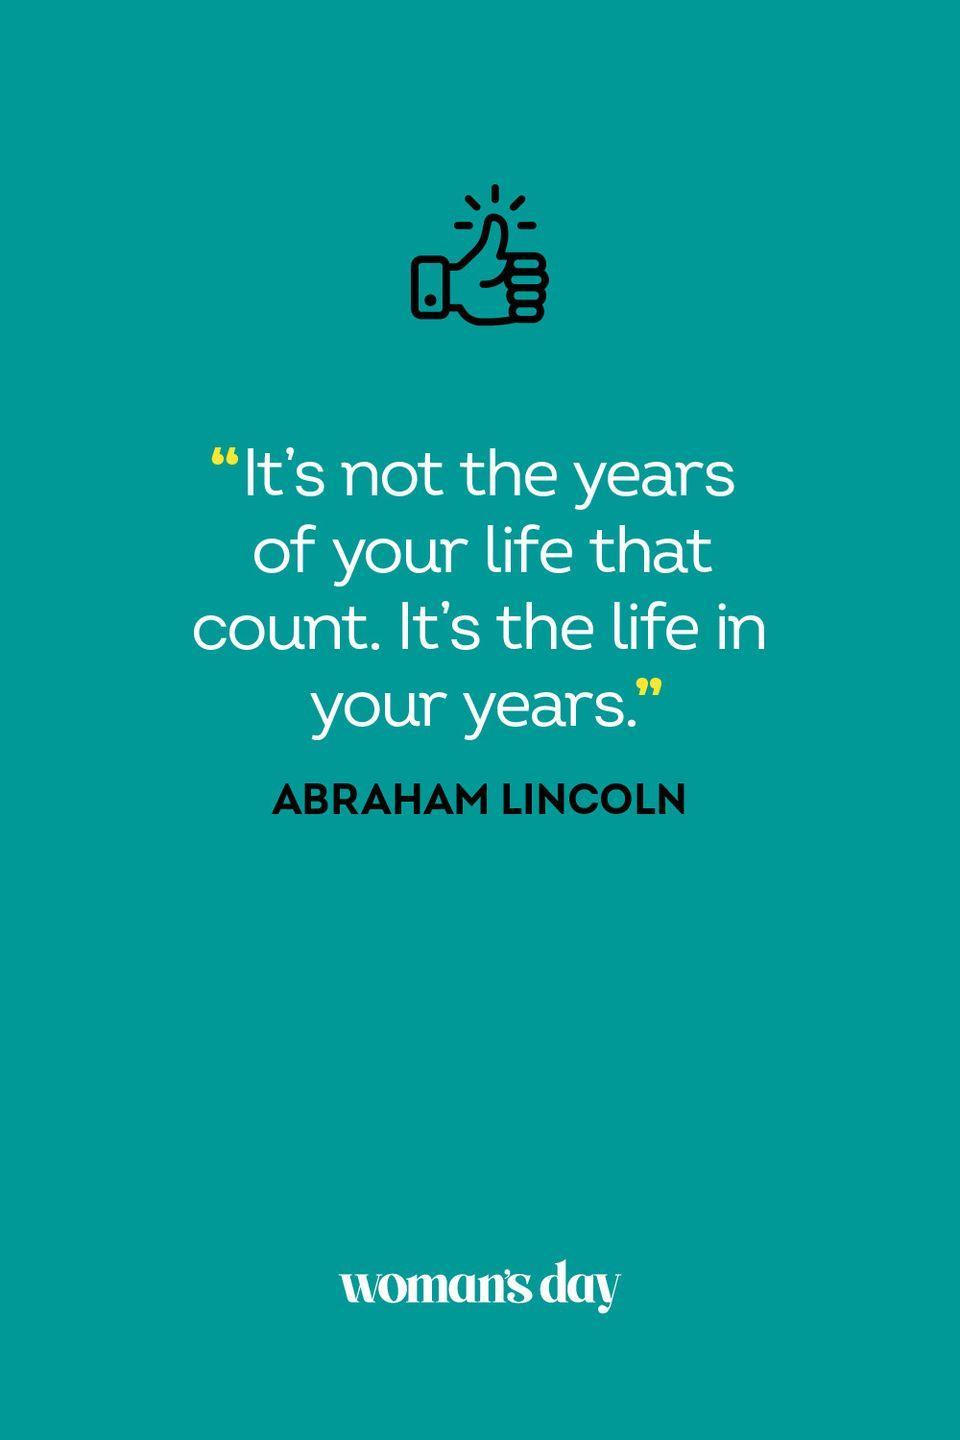 <p>It's not the years of your life that count. It's the life in your years.</p>